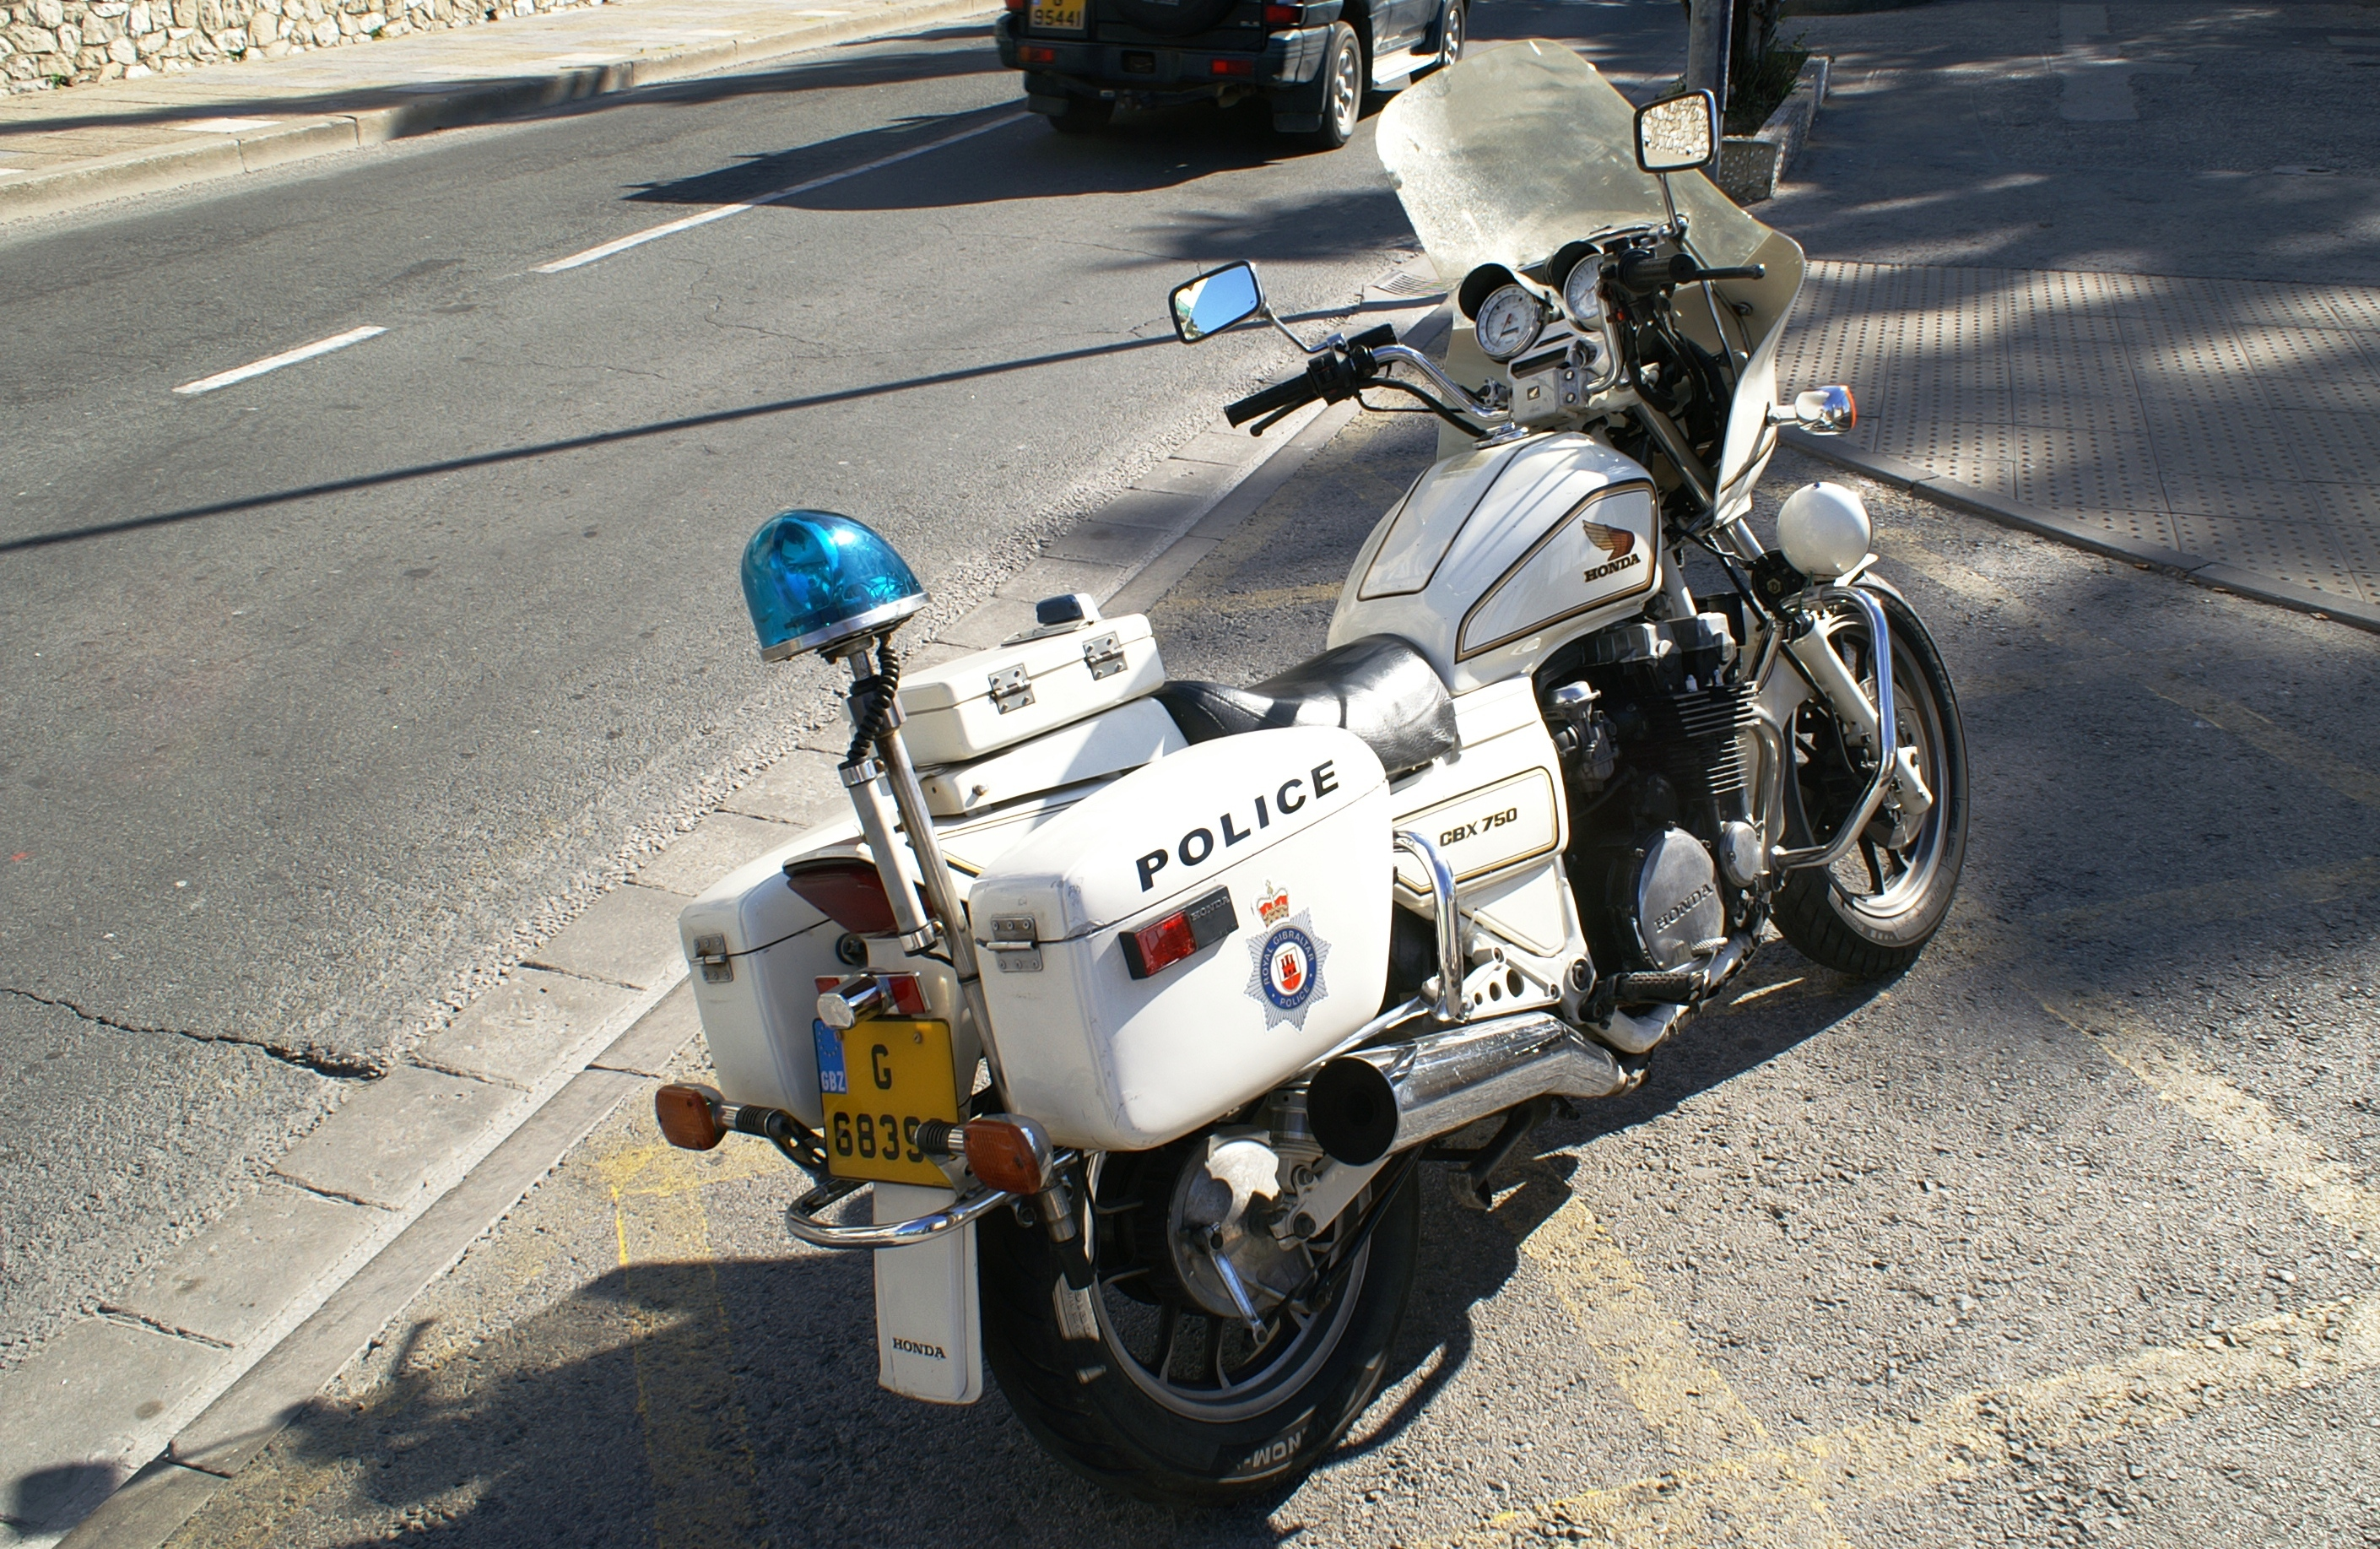 File Police Motorcycle Of Gibraltar 02 Jpg Wikimedia Commons